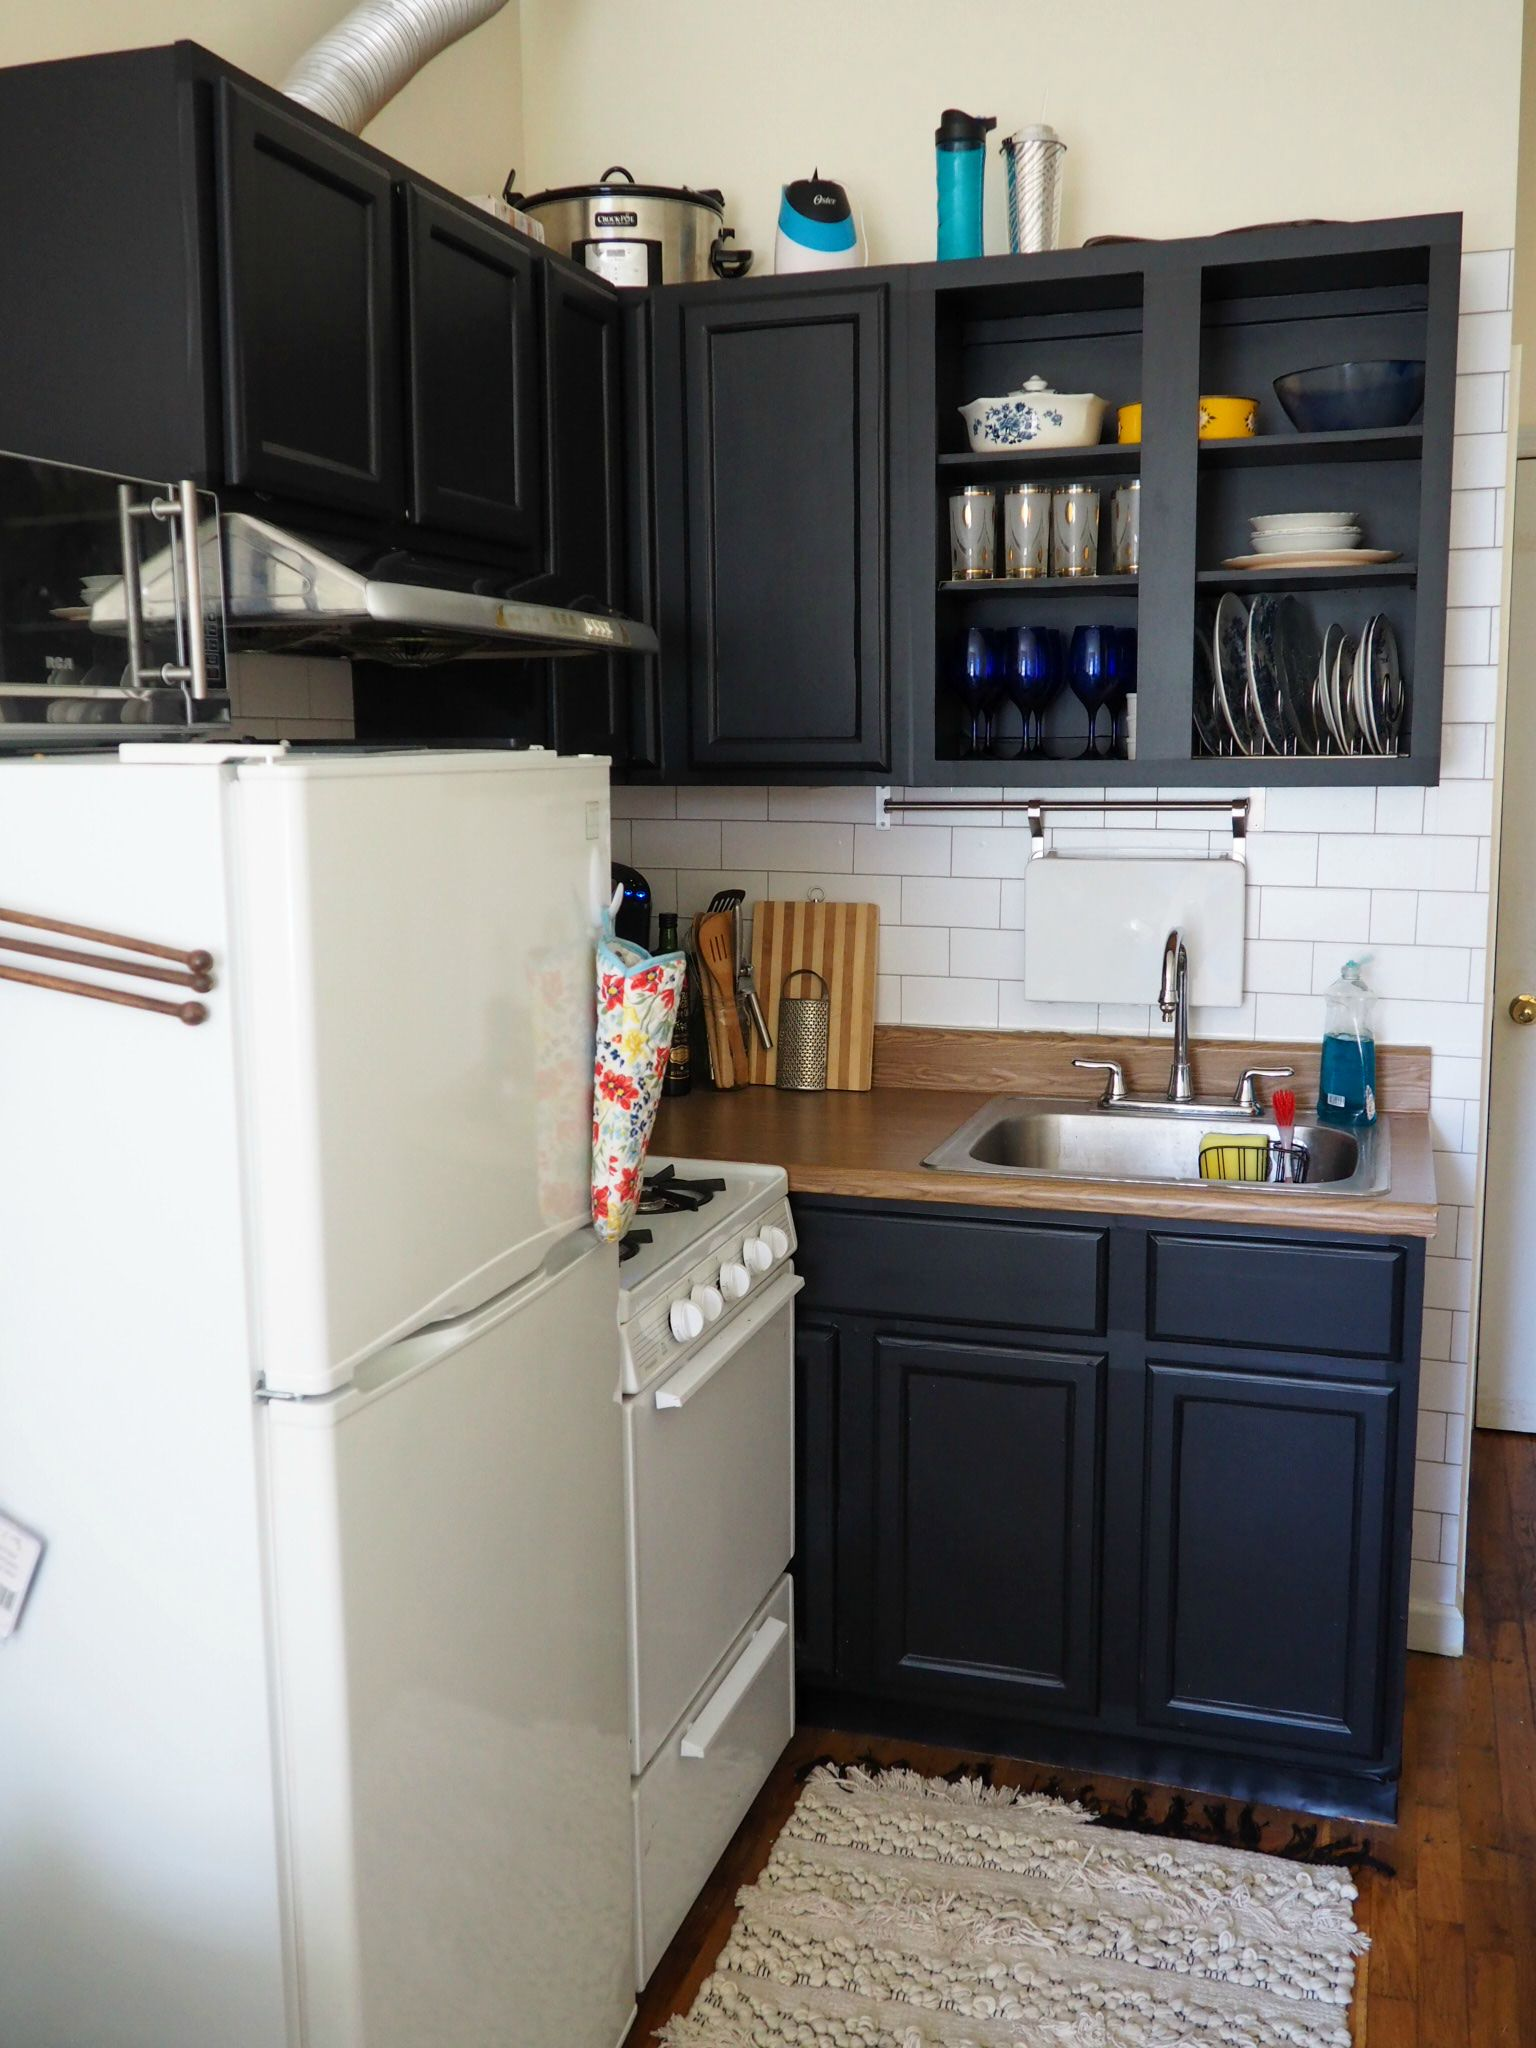 Diy Contact Paper Kitchen Update Part 1 Cabinets Roaming Home In 2020 Rental Kitchen Makeover Rental Kitchen Diy Home Decor For Apartments Renting